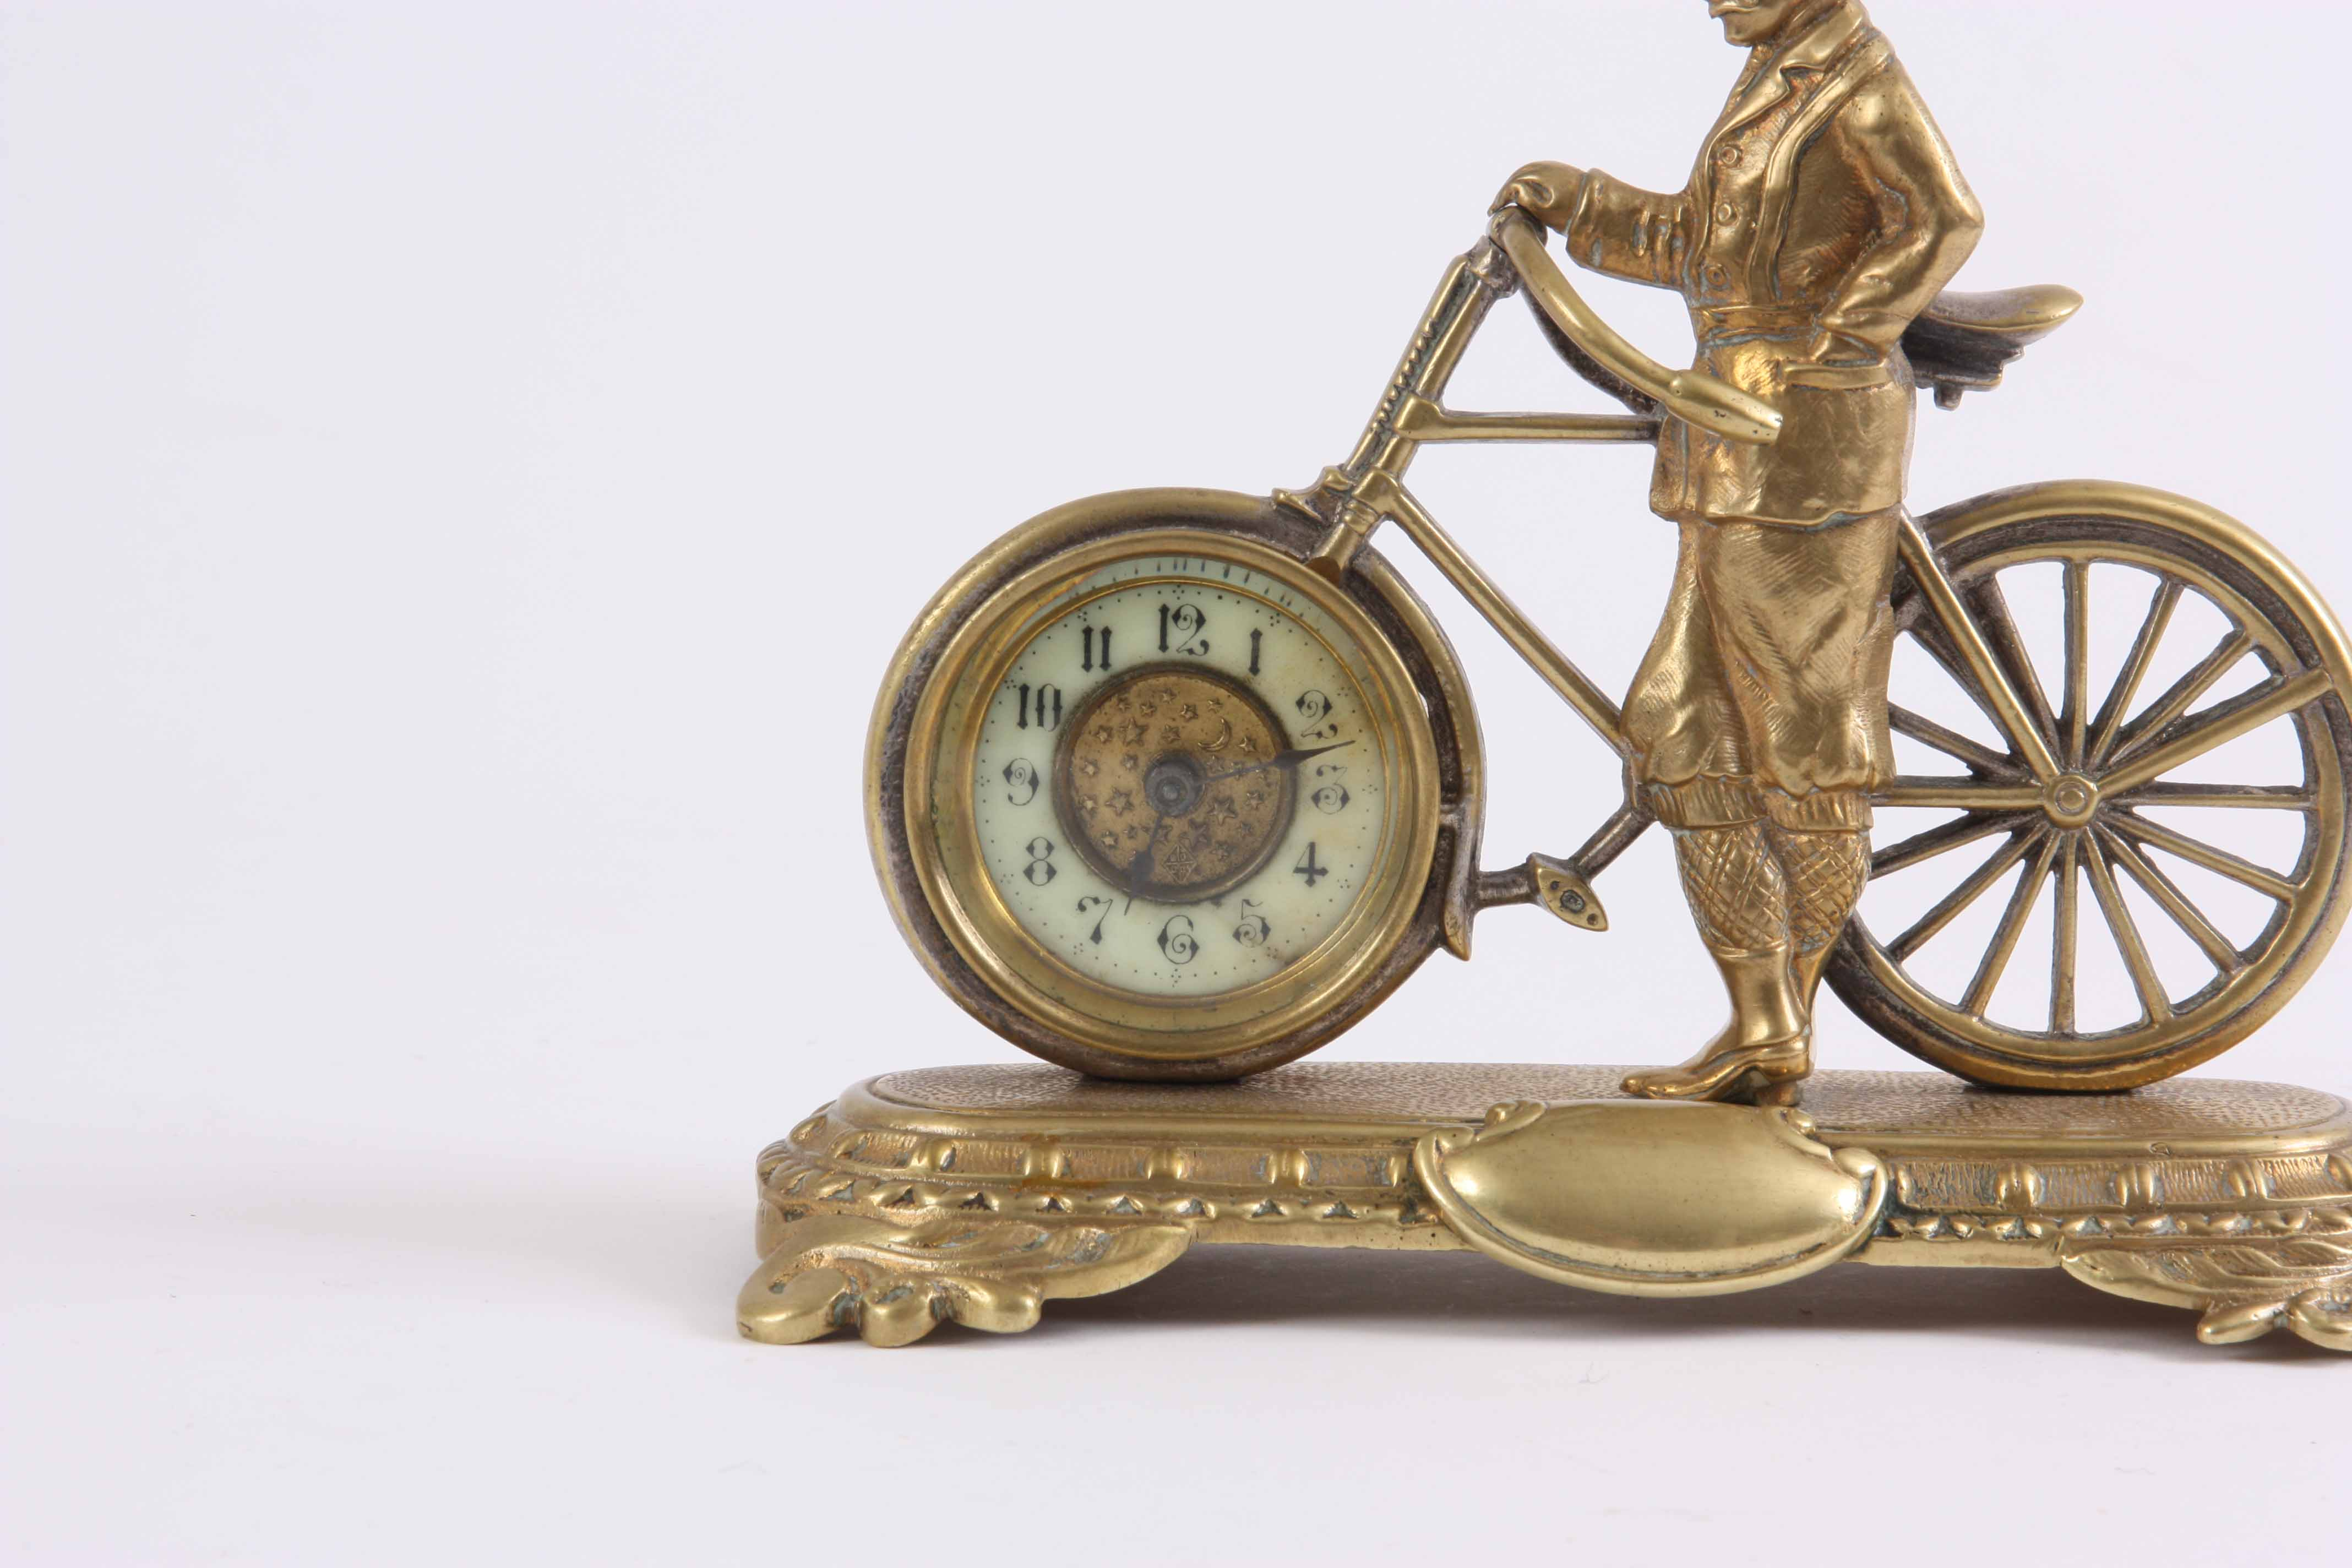 Lot 267 - A LATE 19th CENTURY ENGLISH NOVELTY DESK CLOCK formed as a gilt well dressed gentleman stood next to